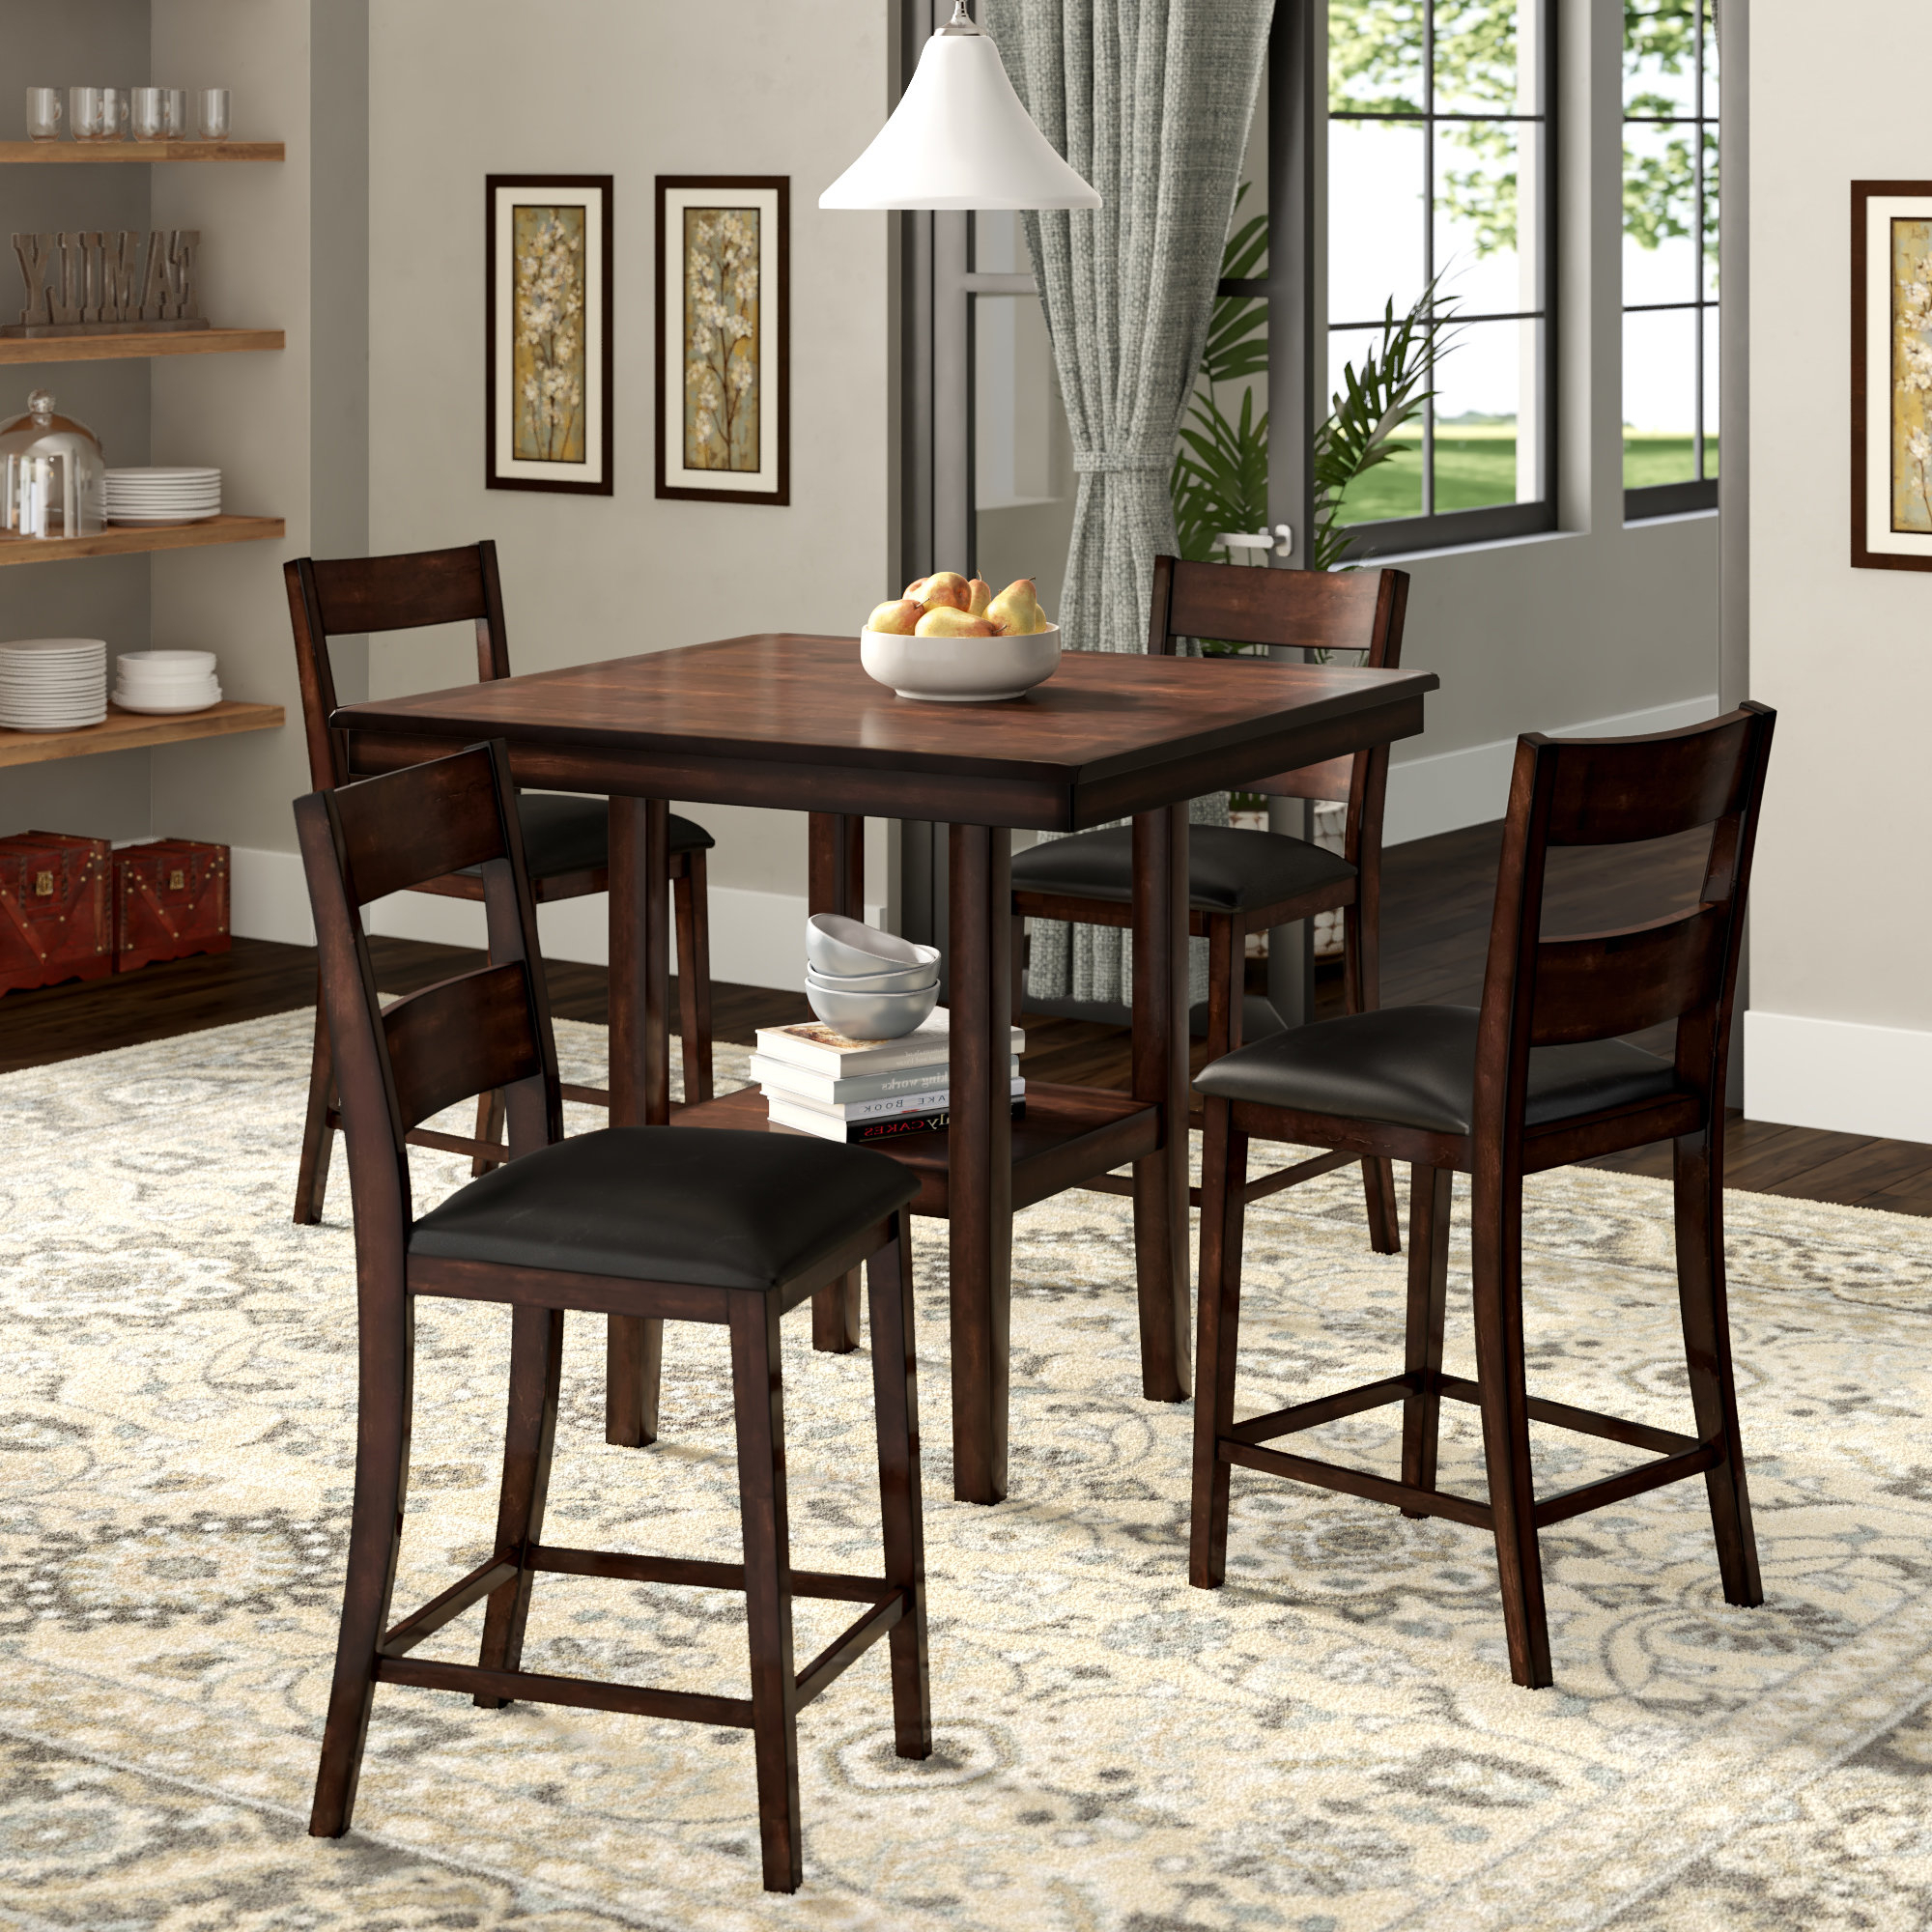 Berrios 3 Piece Counter Height Dining Sets Inside Fashionable Winston Porter Juno 5 Piece Counter Height Dining Set & Reviews (View 13 of 25)